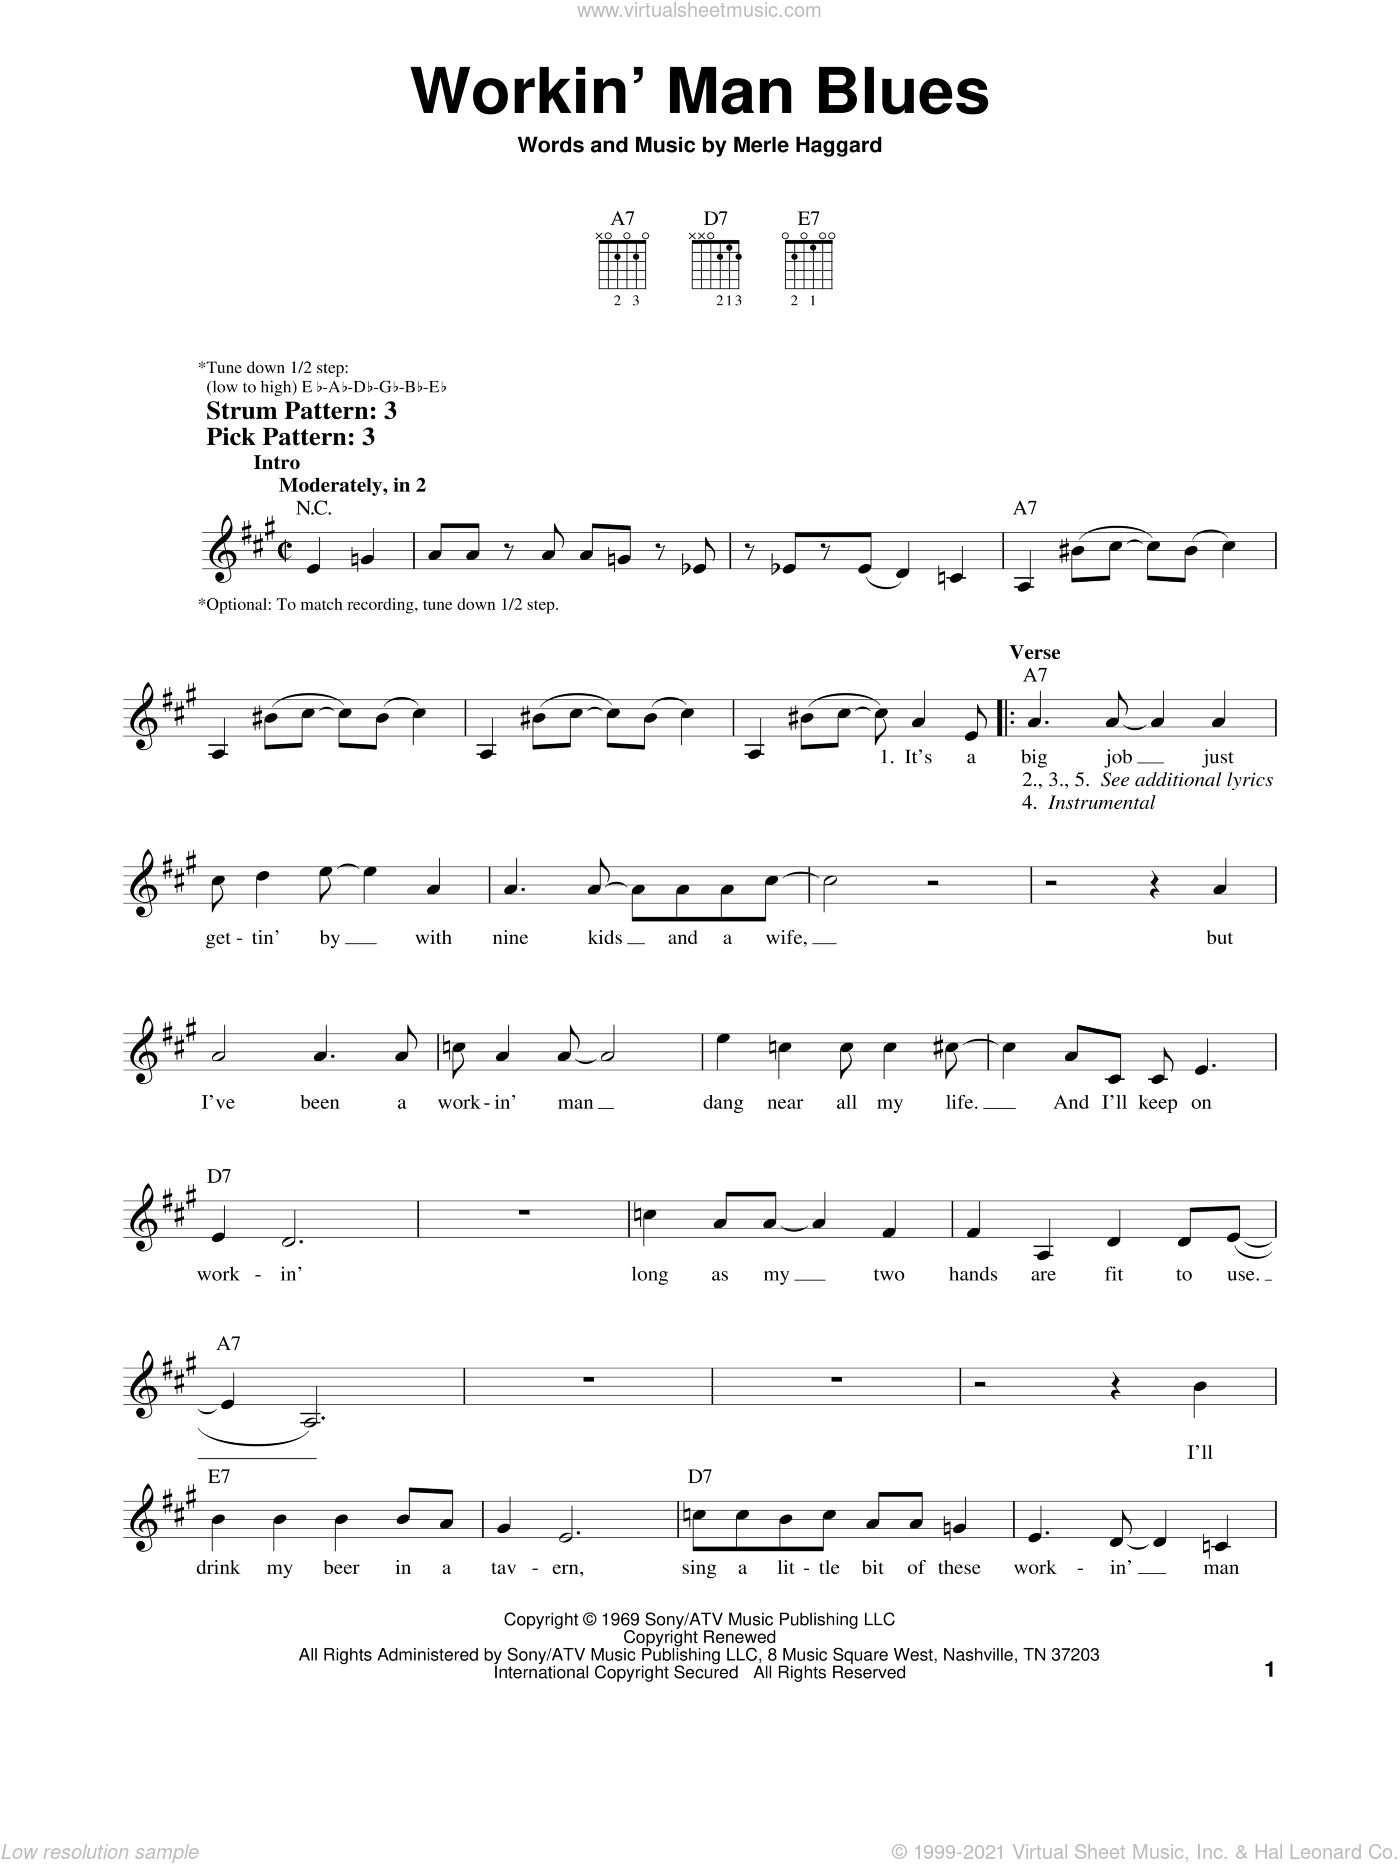 Workin' Man Blues sheet music for guitar solo (chords) by Merle Haggard, easy guitar (chords). Score Image Preview.